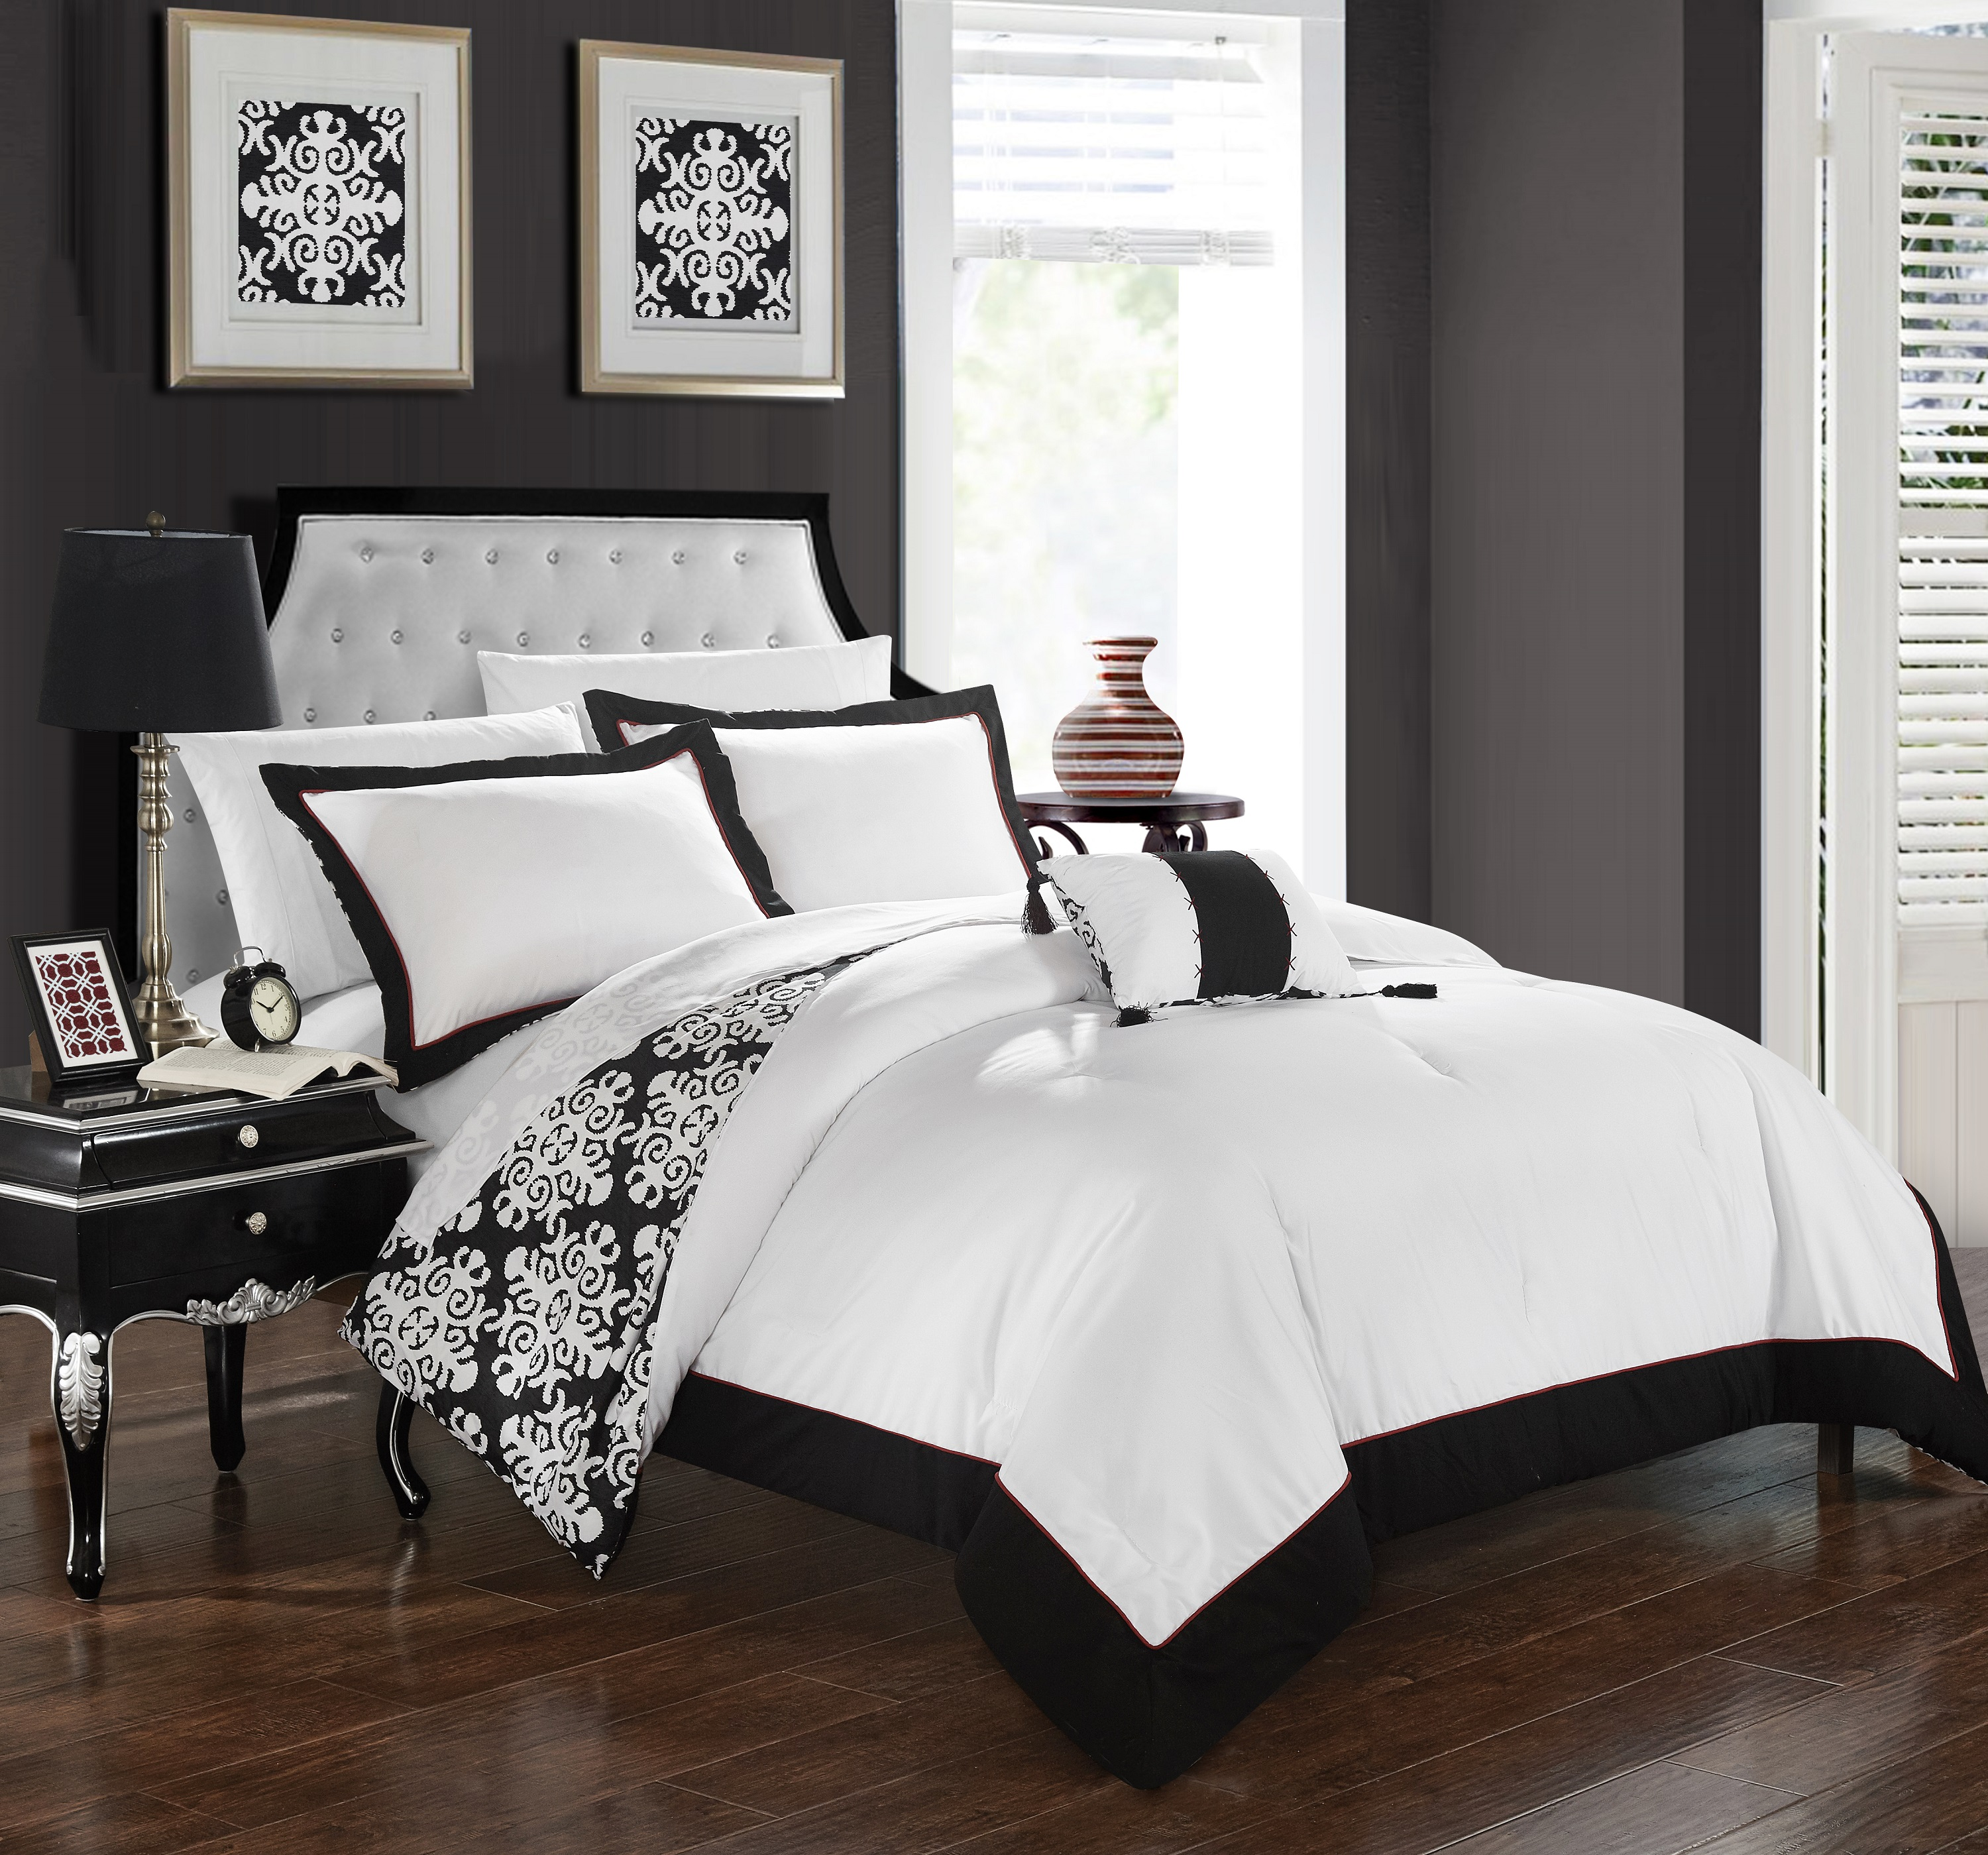 Chic Home 4-Piece Maribeth Black and White REVERSIBLE Medallion printed PLUSH Hotel Collection Queen Duvet Cover Set Black